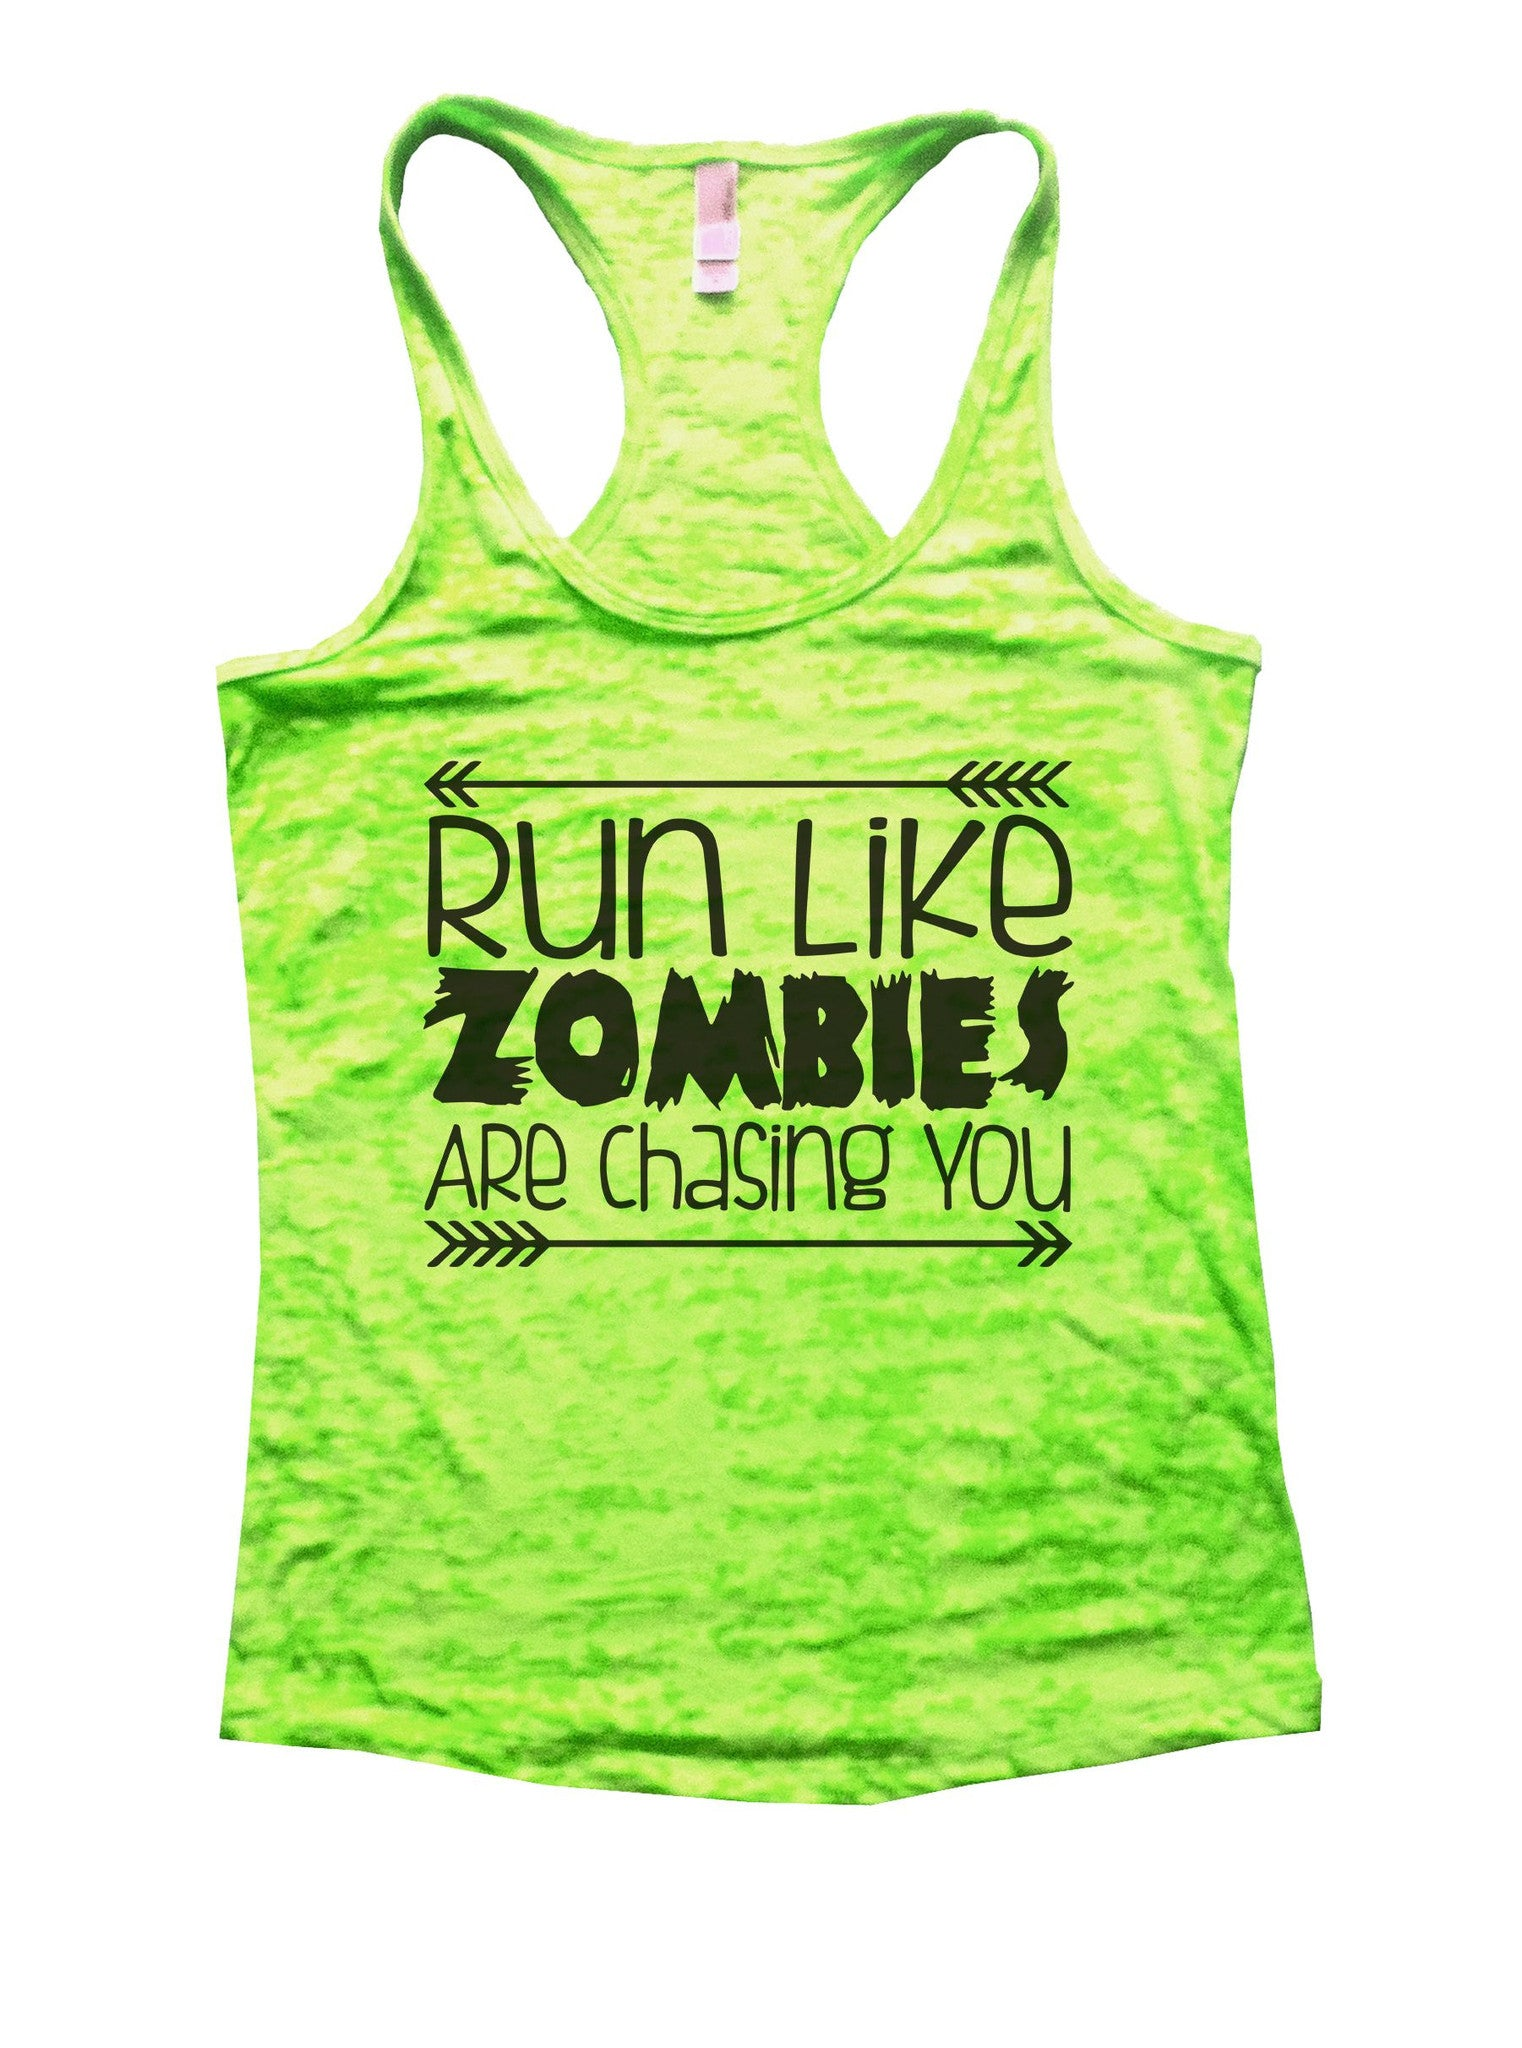 Run Like Zombies Are Chasing You Burnout Tank Top By BurnoutTankTops.com - 837 - Funny Shirts Tank Tops Burnouts and Triblends  - 2